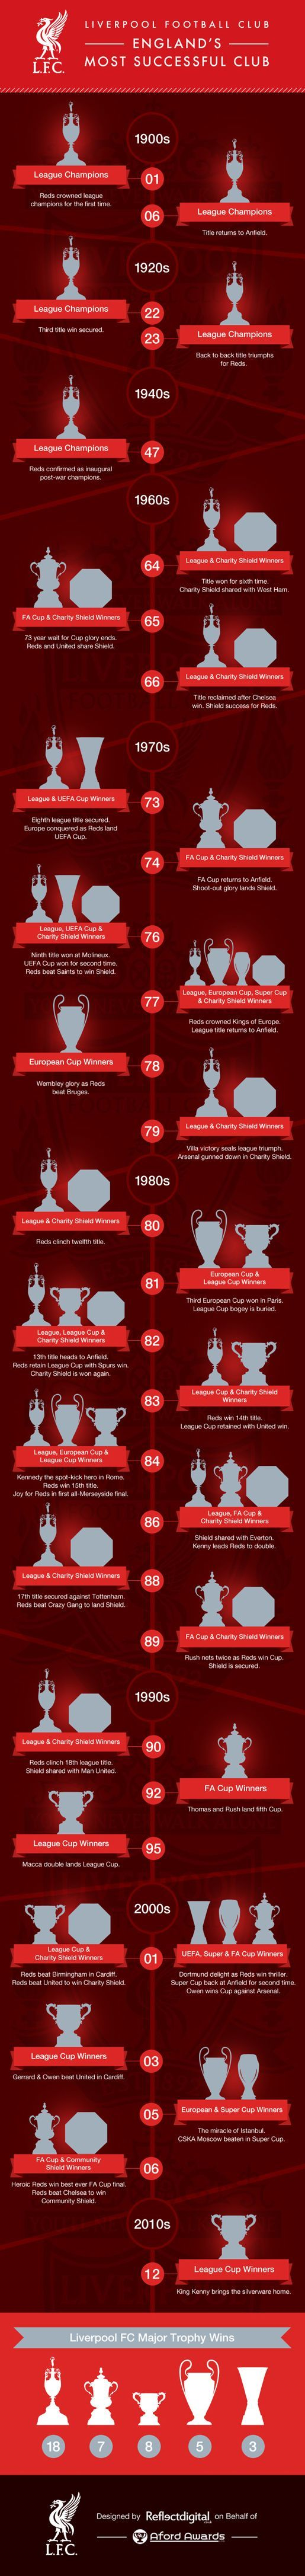 Liverpool - England's Most Successful Football Club #LFC